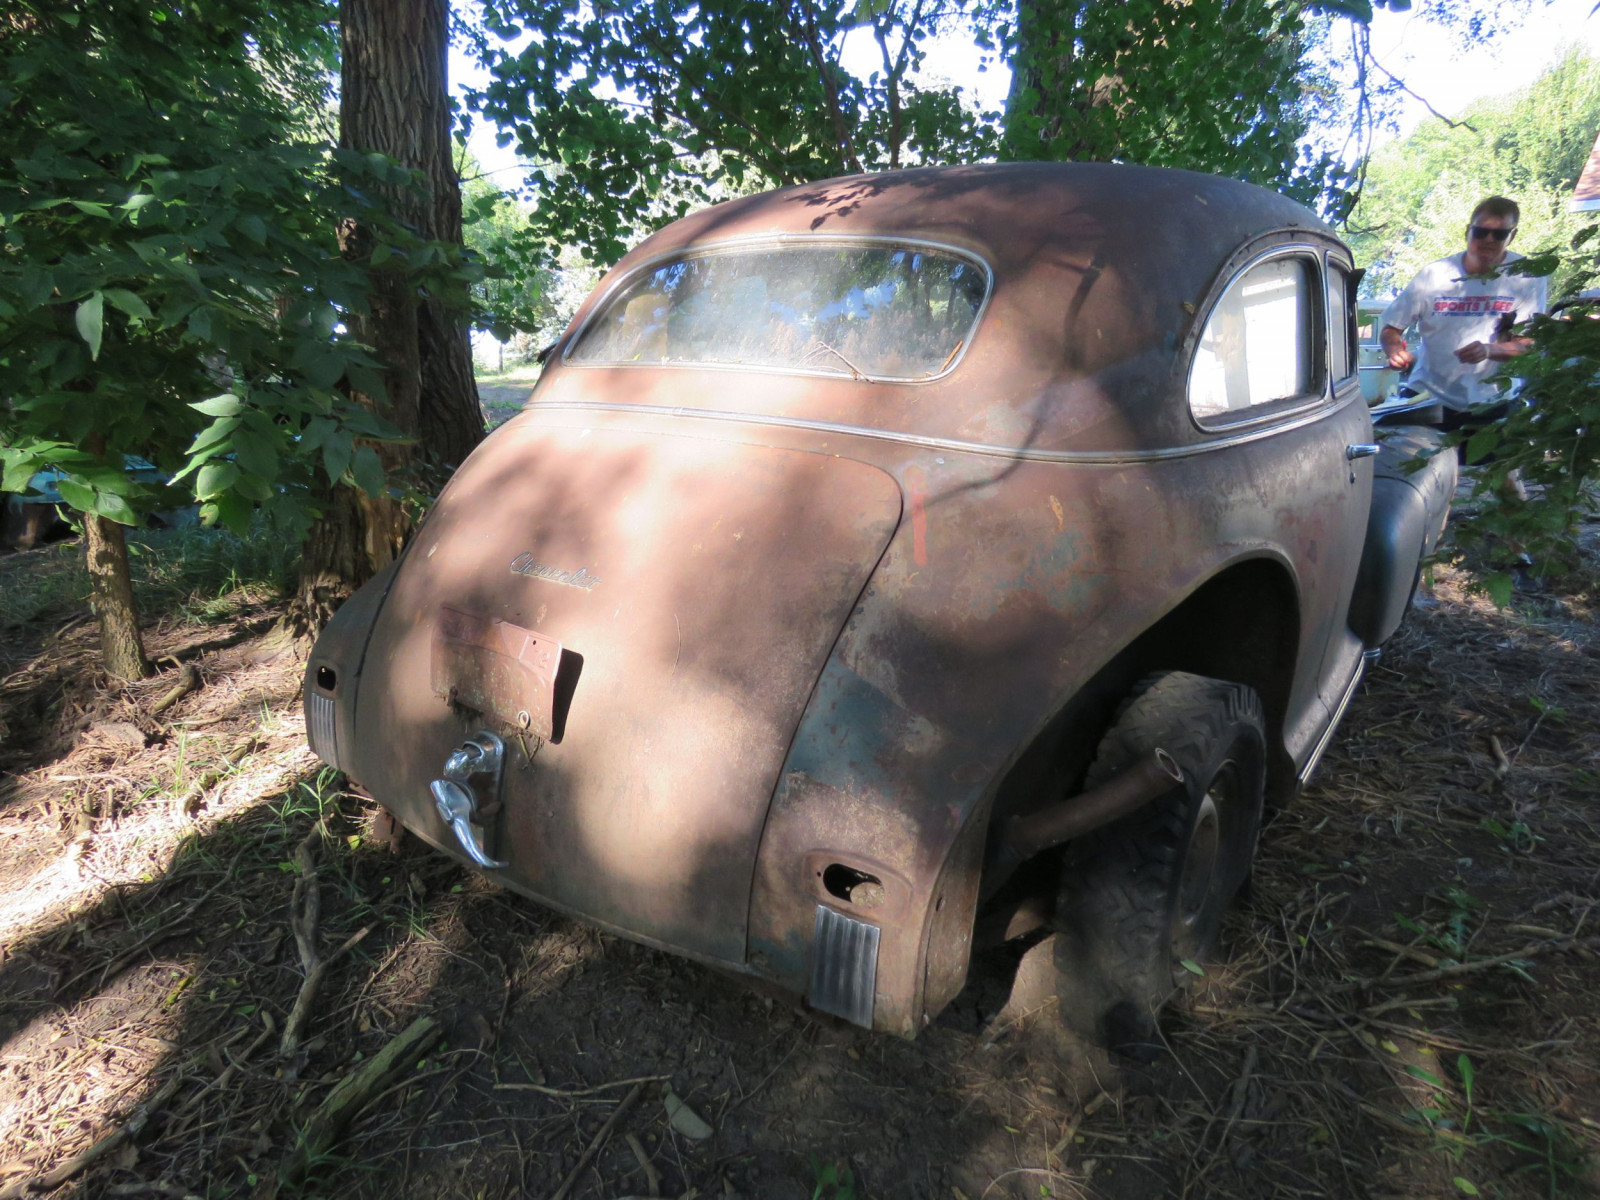 1947 Chevrolet 2dr Sedan for project or parts - Image 3